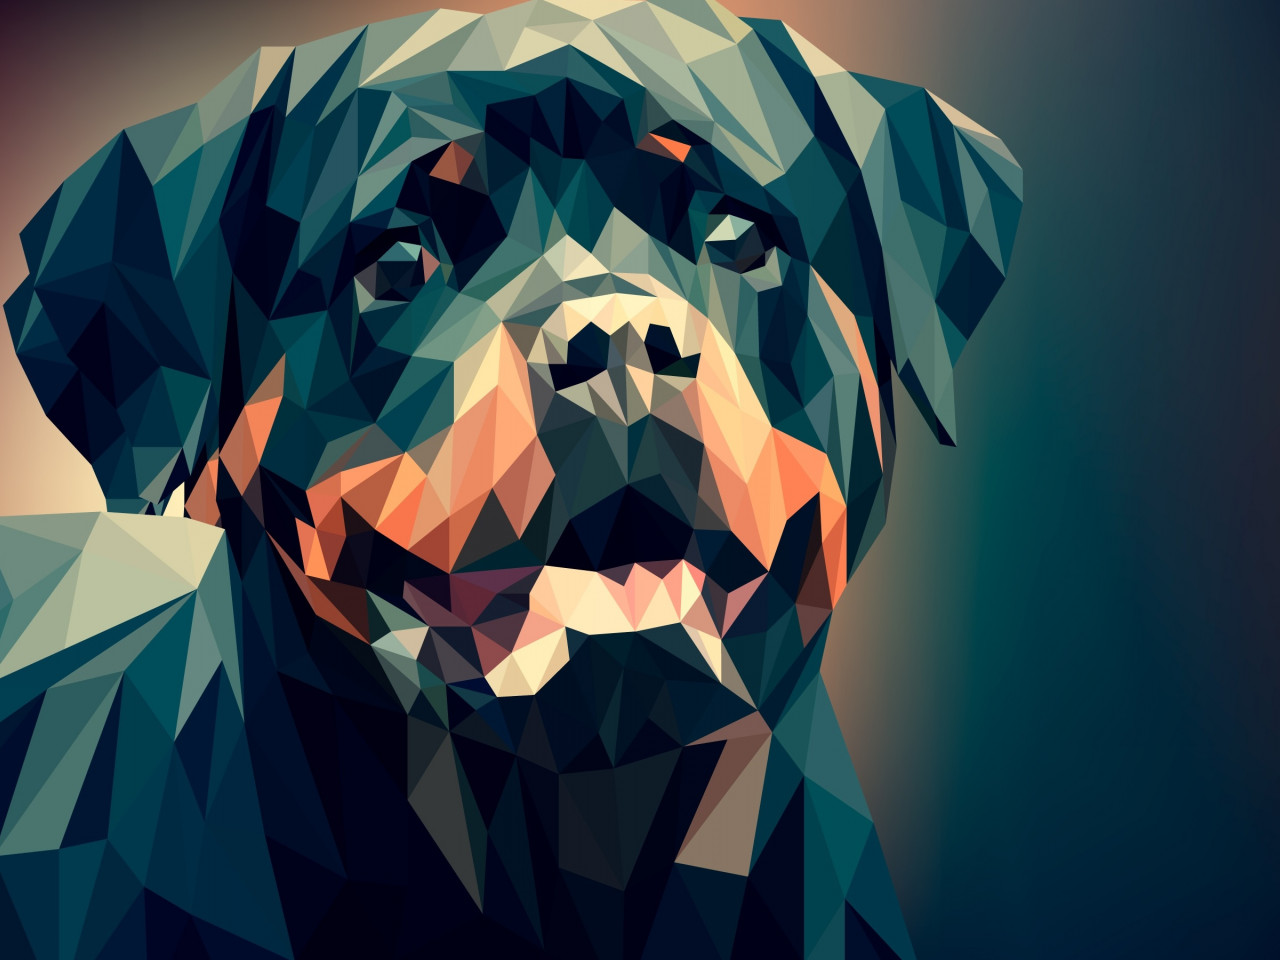 Low Poly Illustration: Rottweiler wallpaper 1280x960